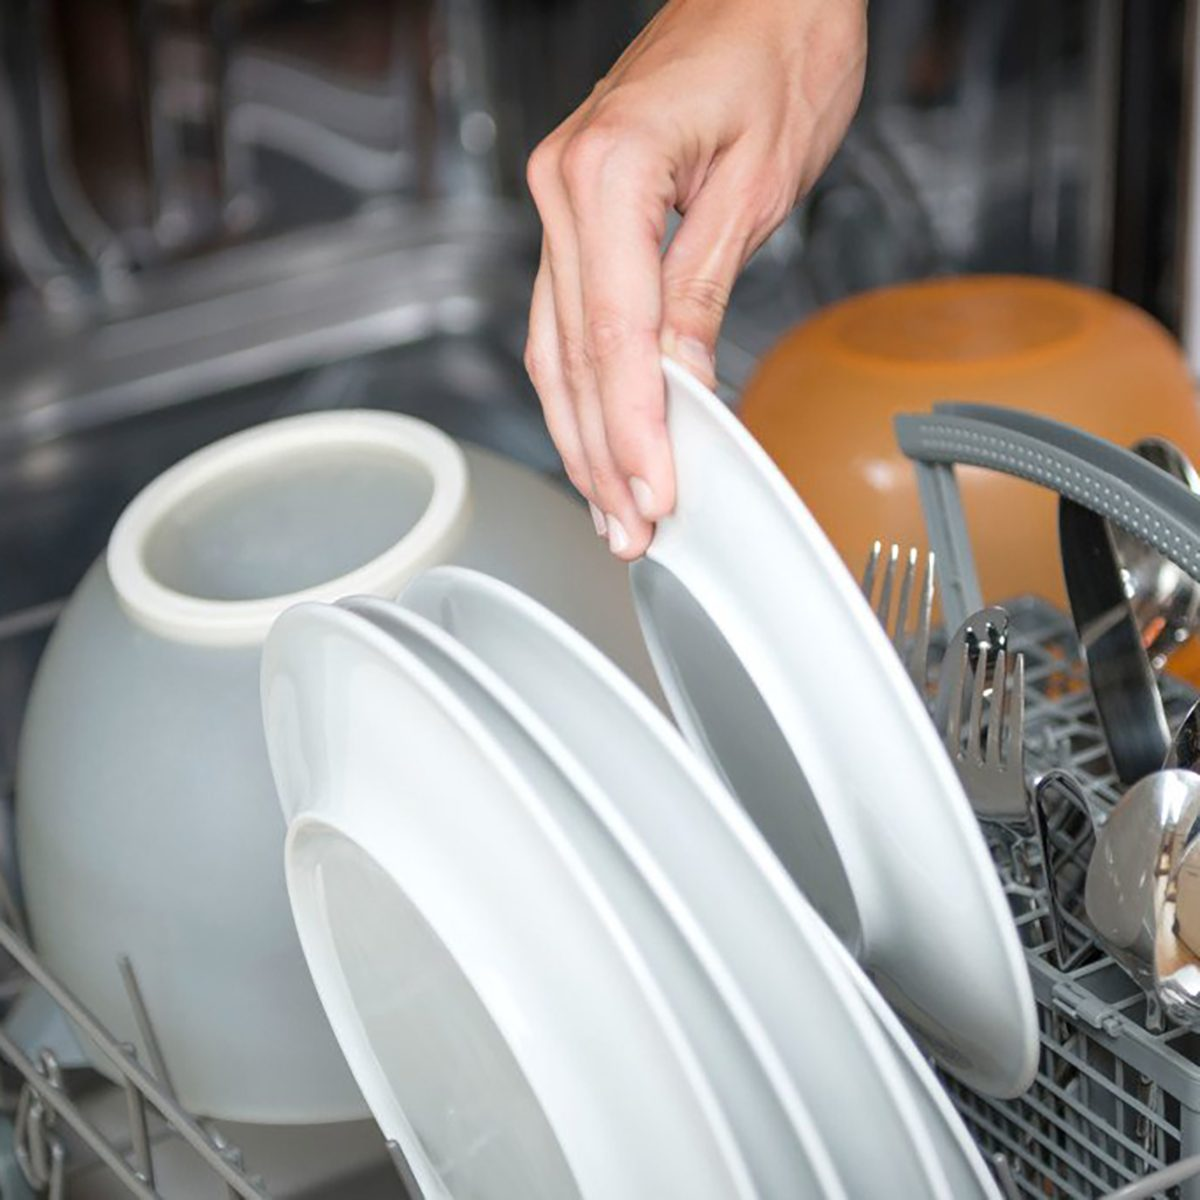 person loading plates in dishwasher